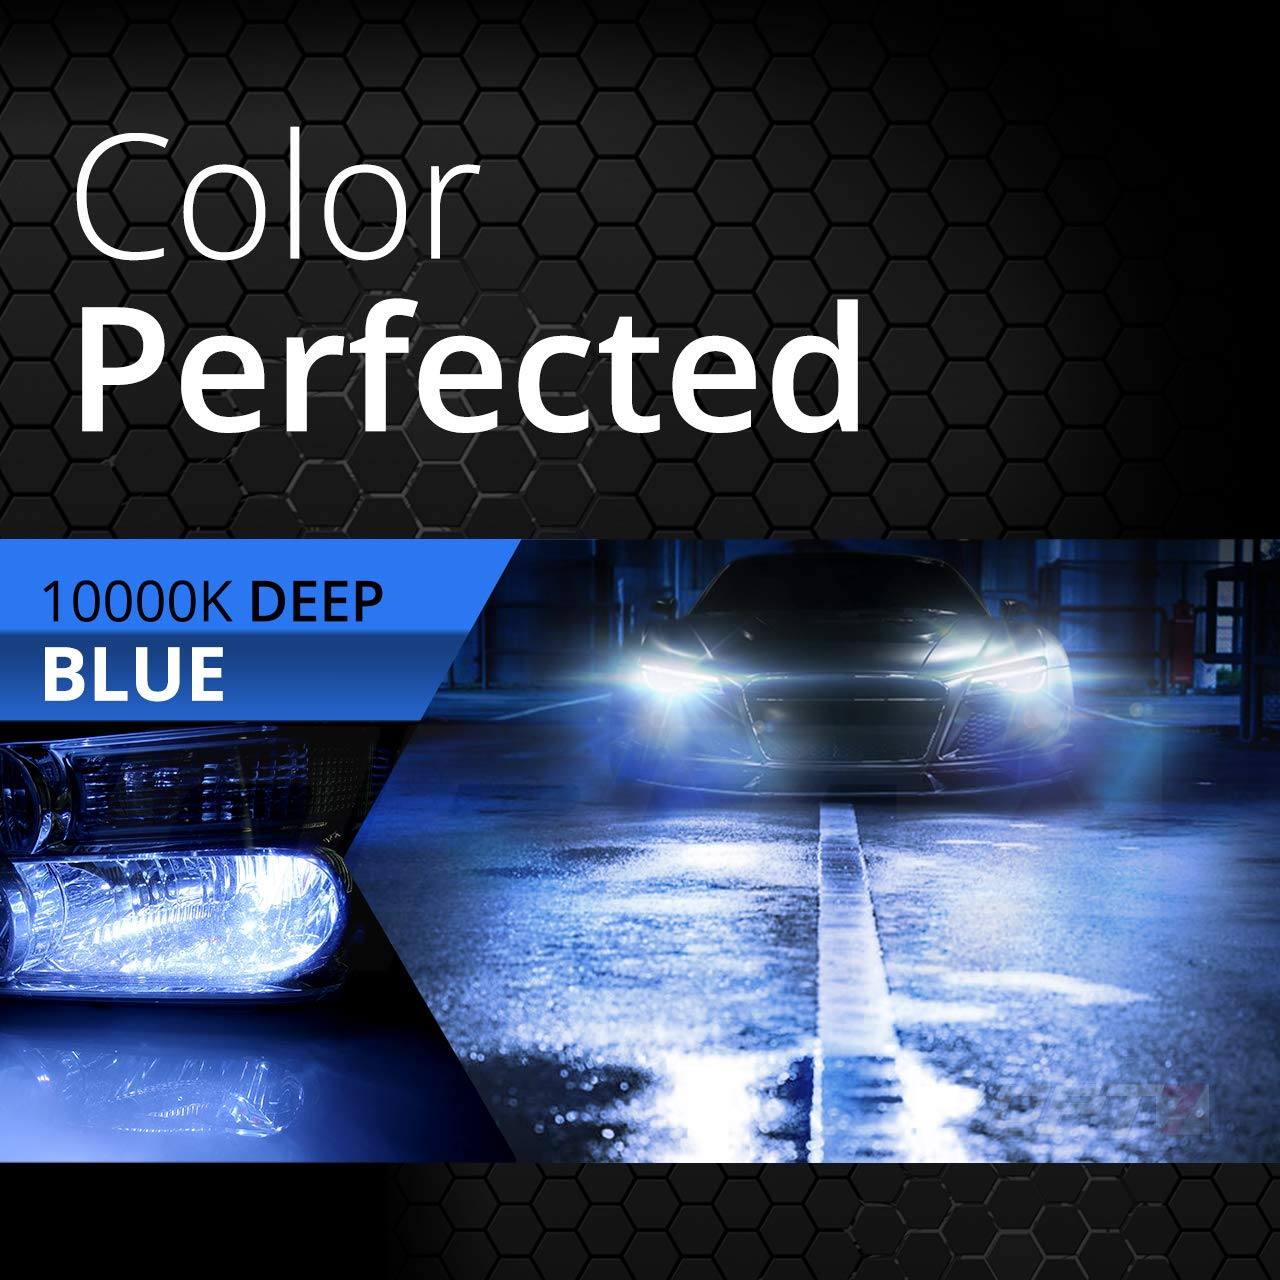 6000K Lightning Blue Xenon Light 6X Longer Life All Bulb Sizes and Colors 2 Yr Warranty OPT7 Boltzen AC CANbus H7 HID Kit 5X Brighter